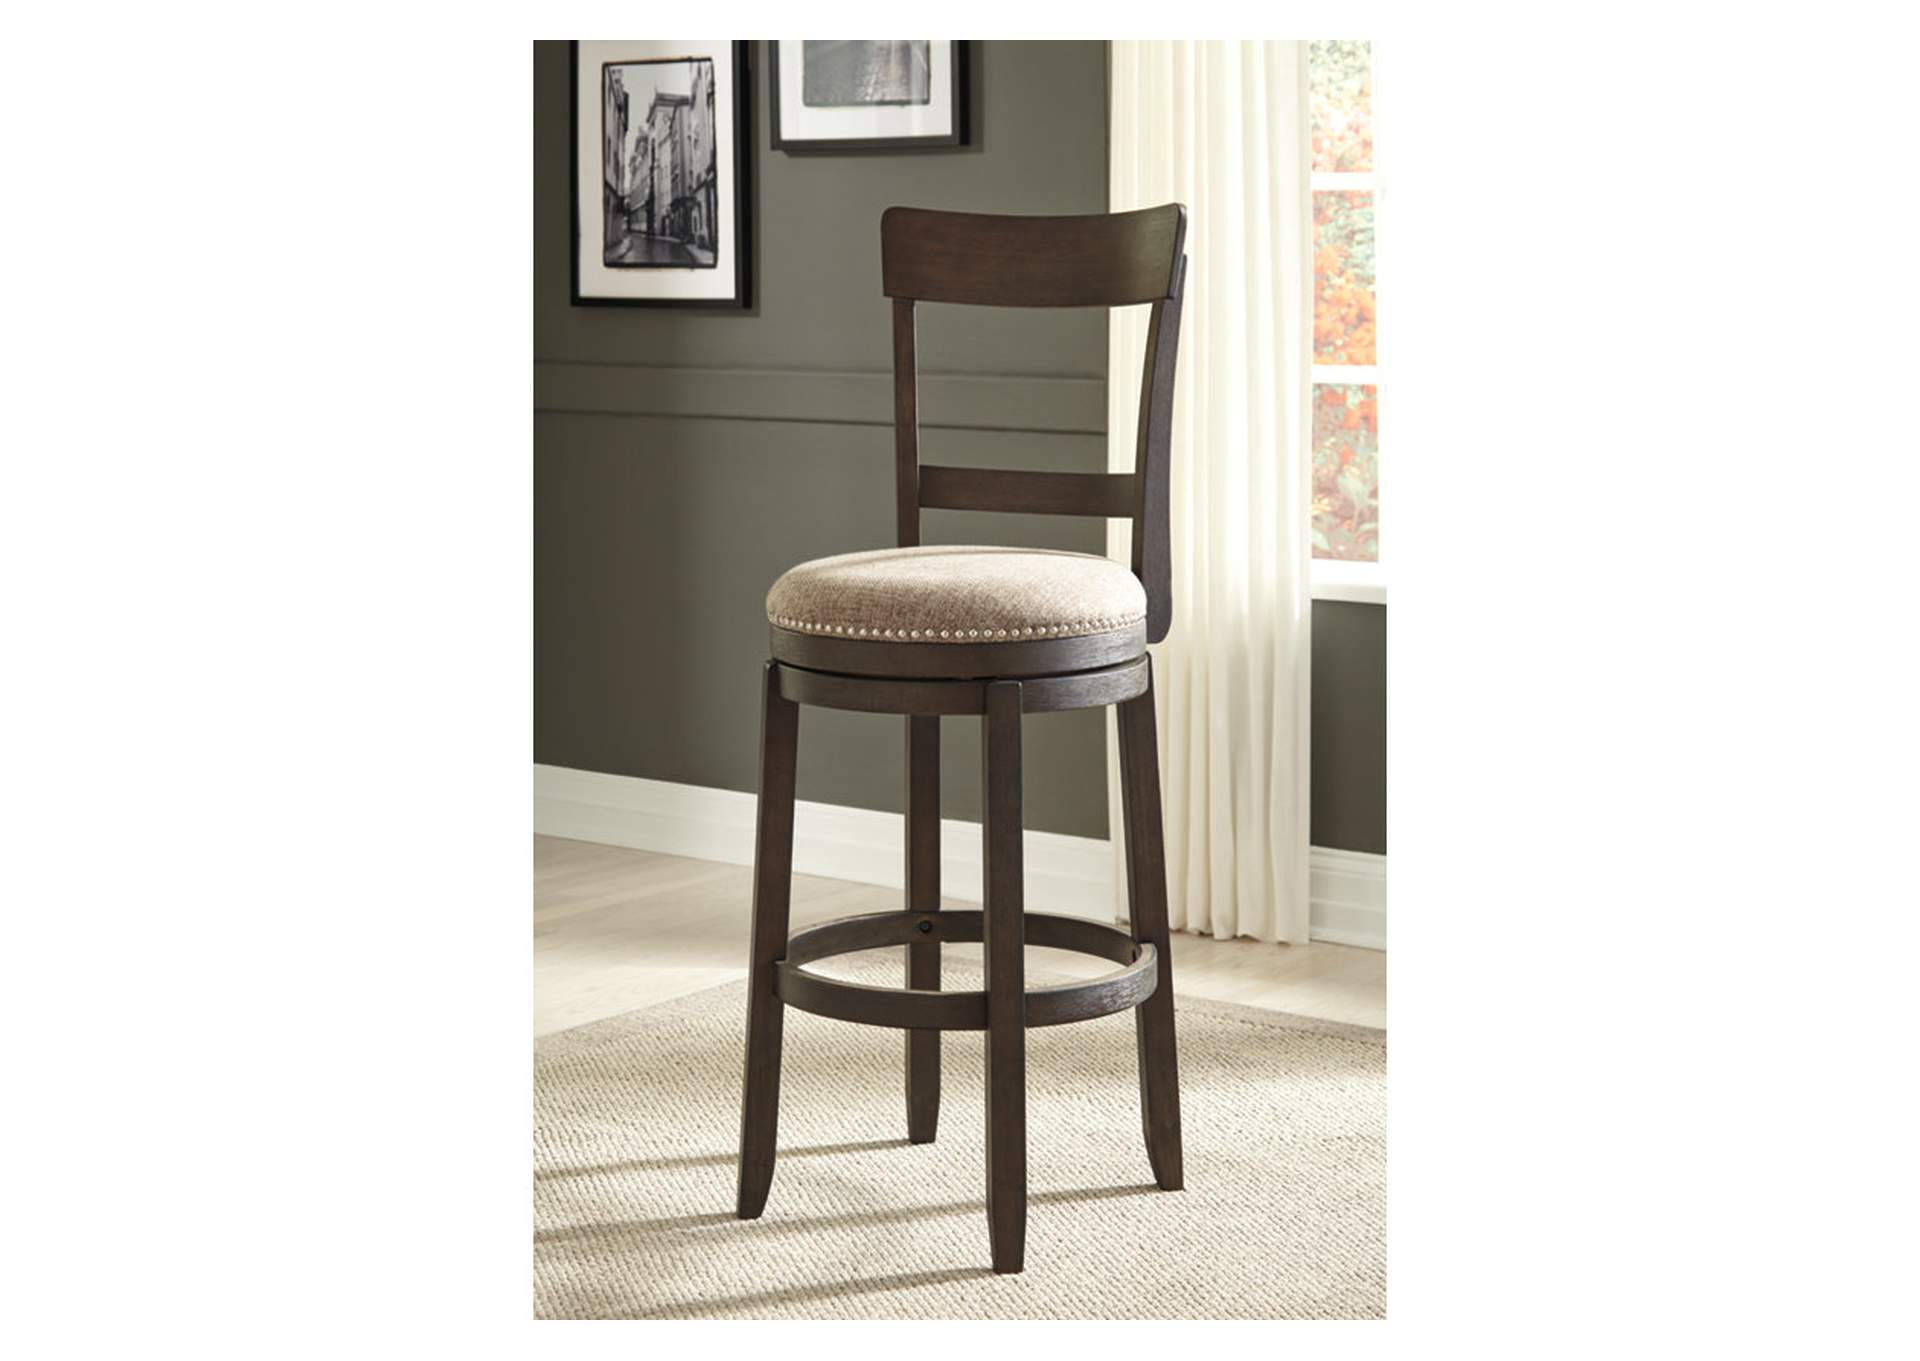 Drewing Brown Upholstered Barstool (Set of 2),Signature Design By Ashley